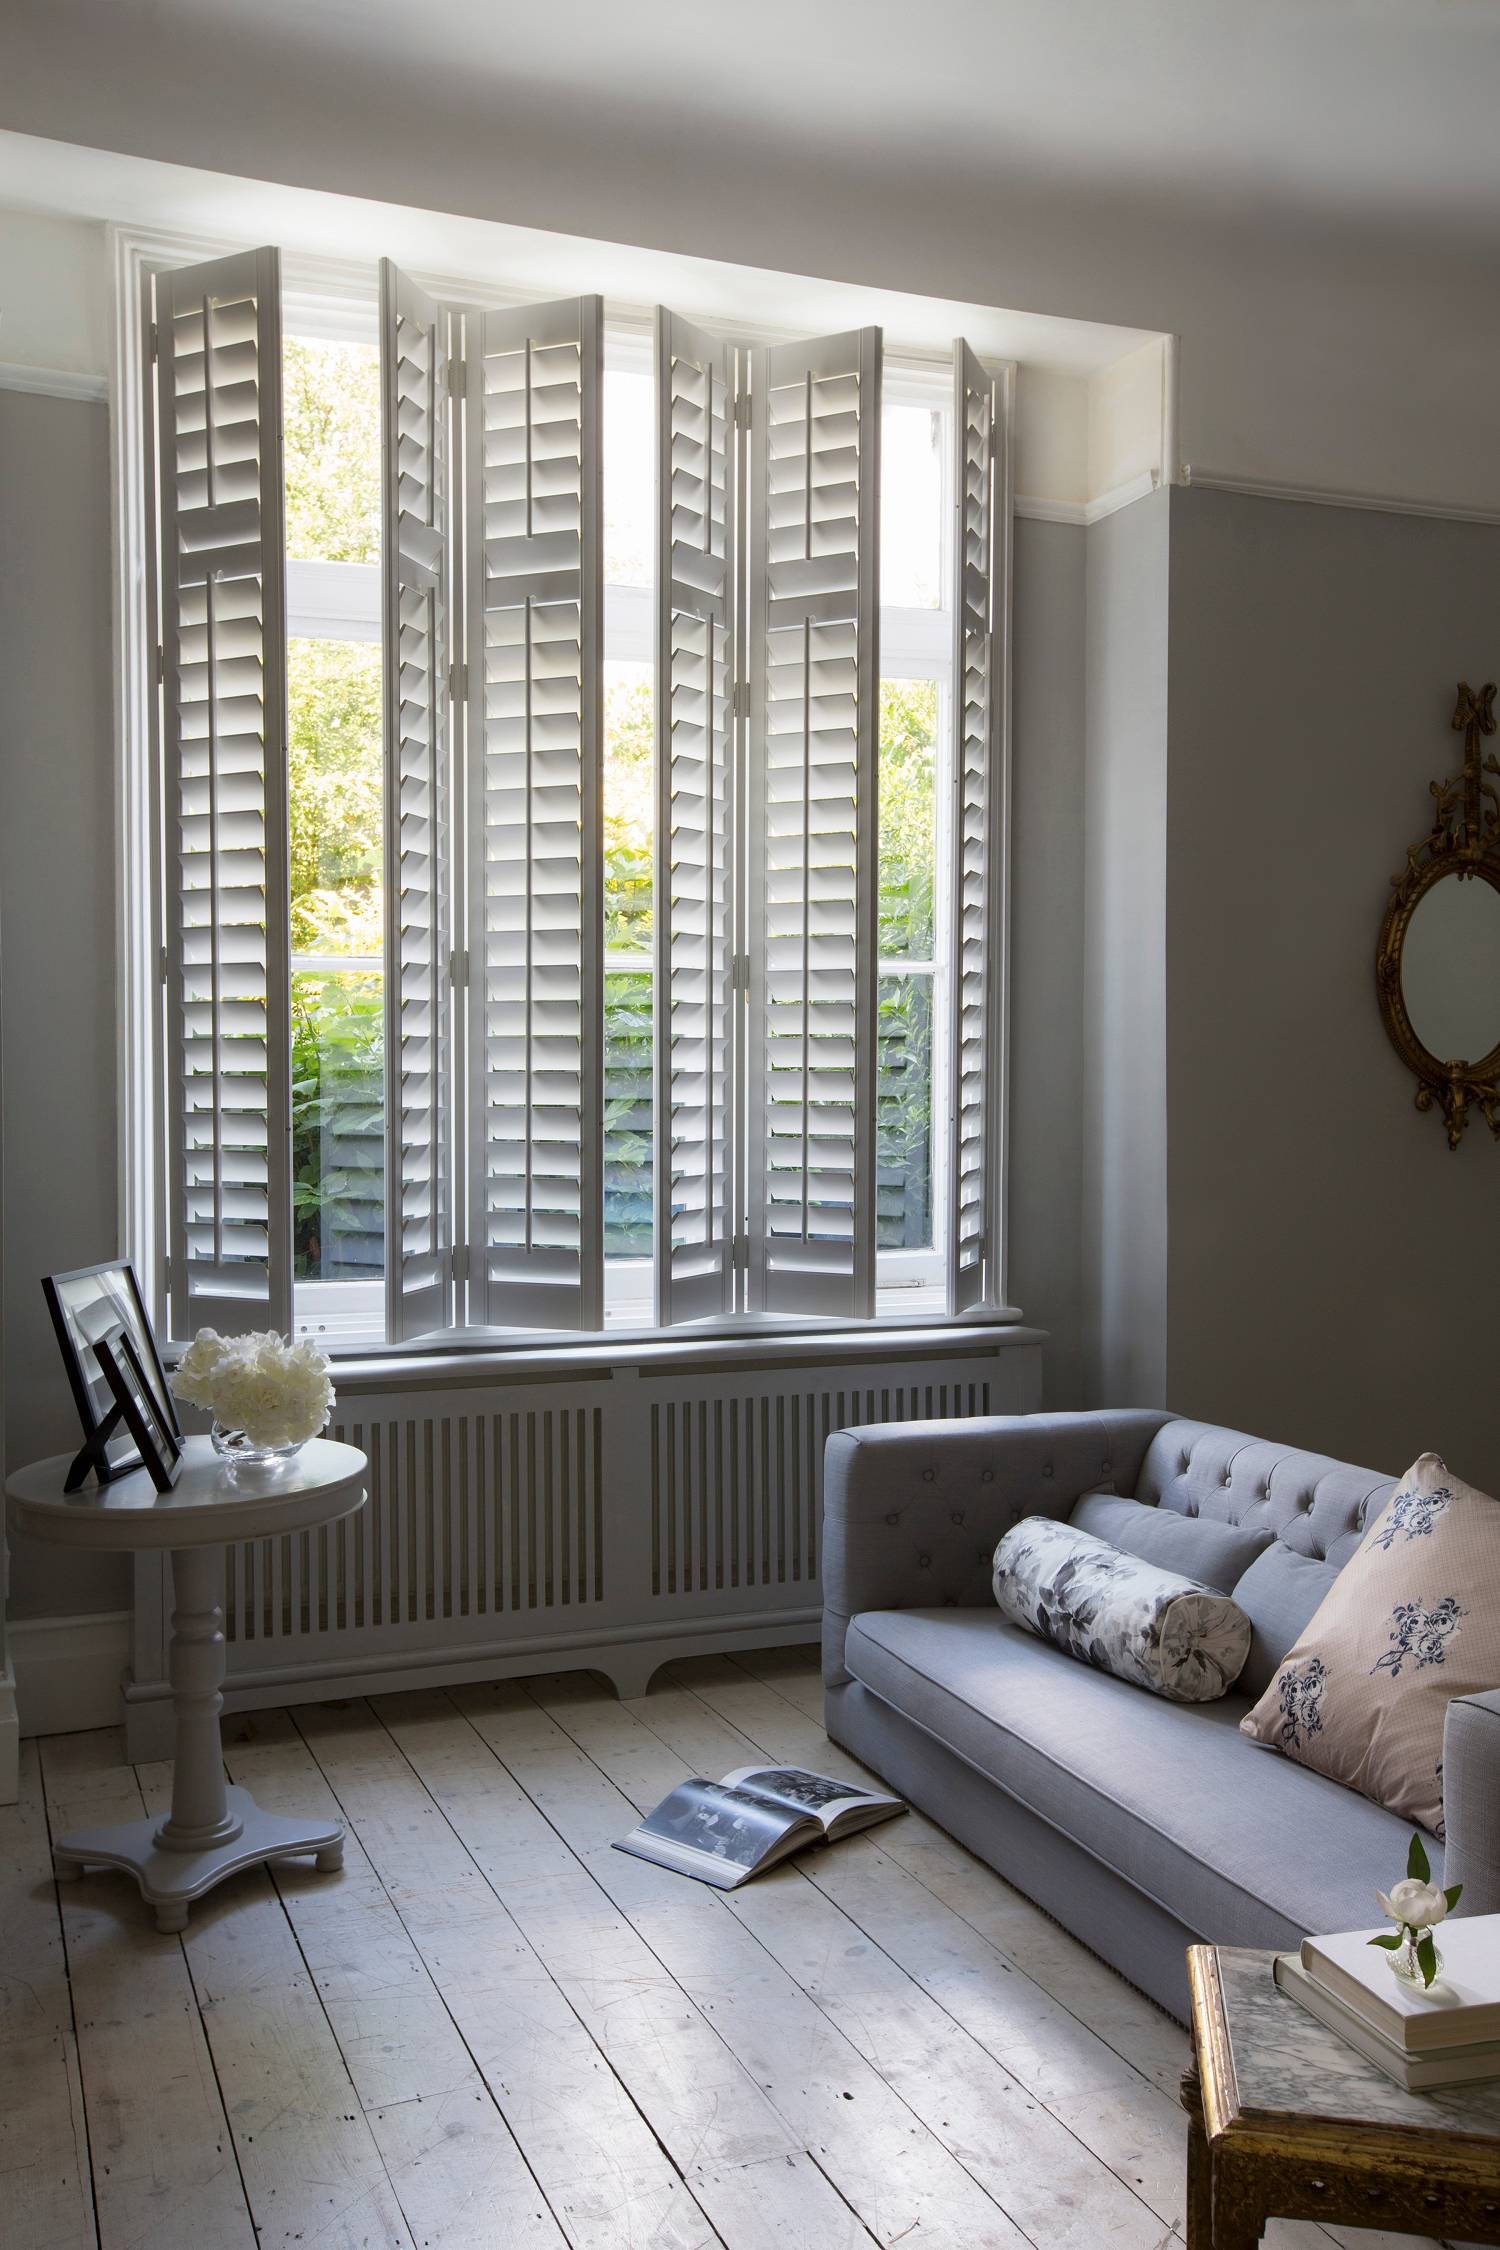 Enjoy the Timeless Style of Interior Shutters